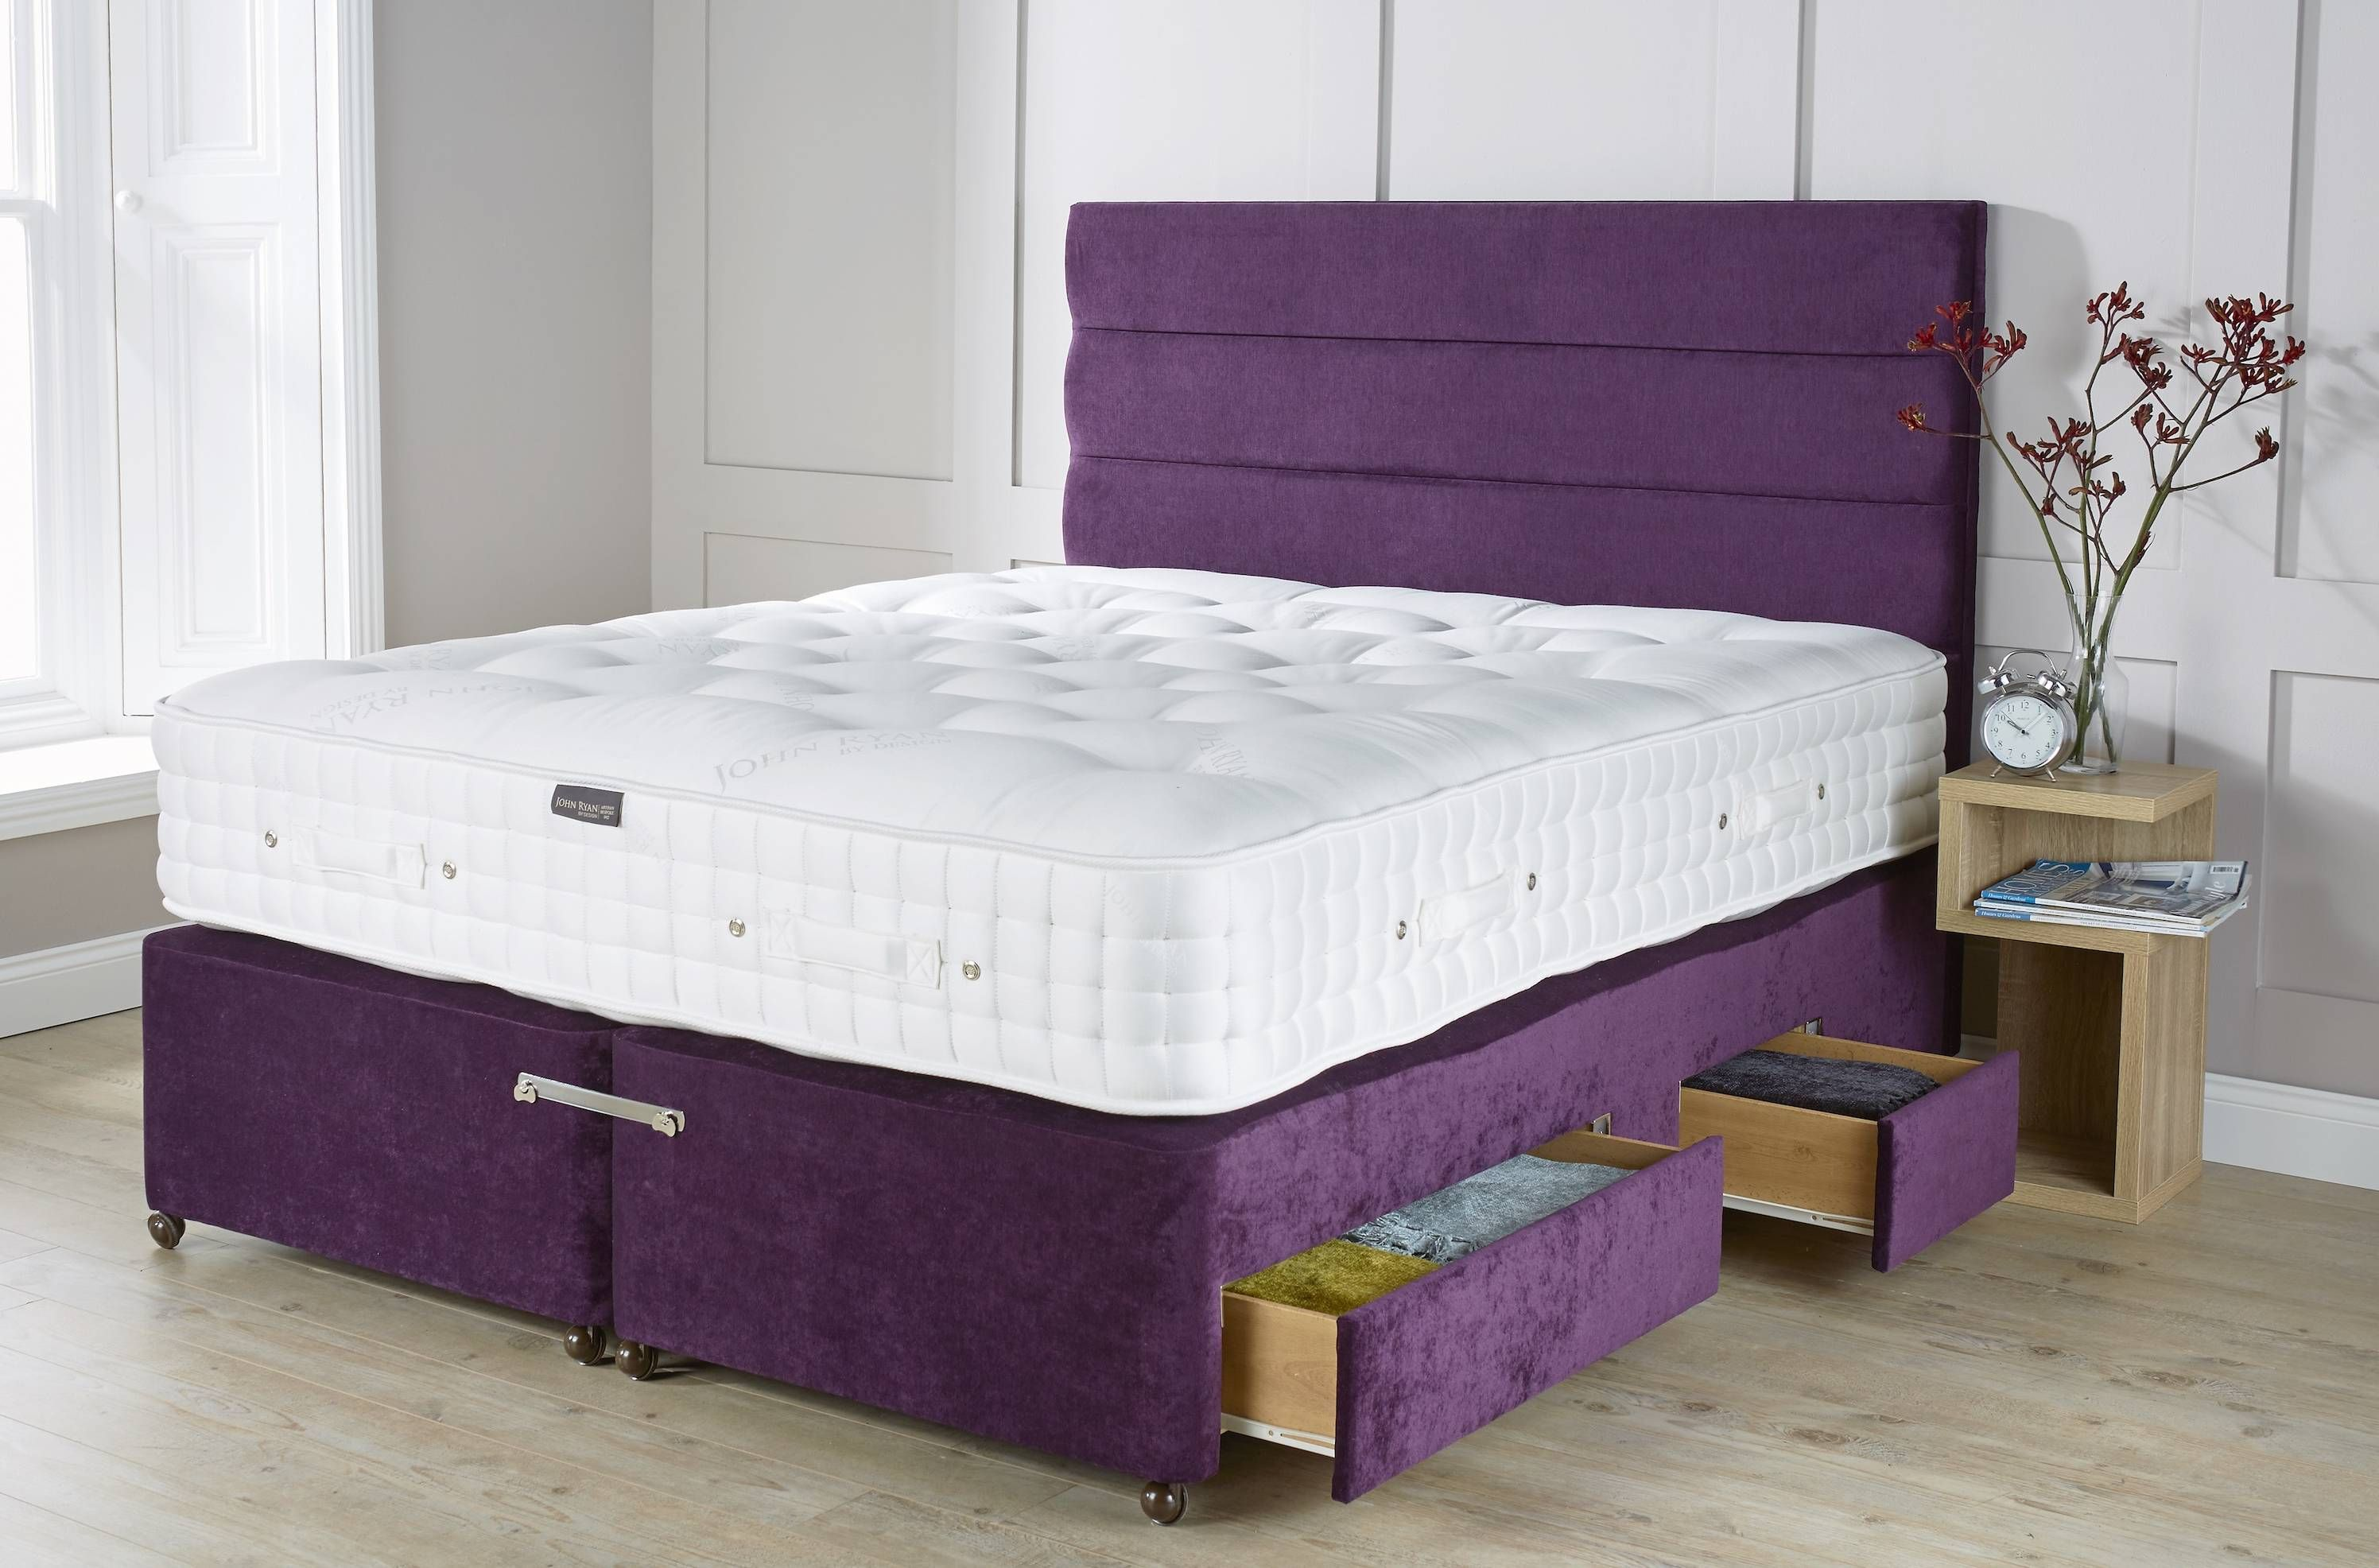 71 Unique Collection Of Non toxic Bed Frame Check more at